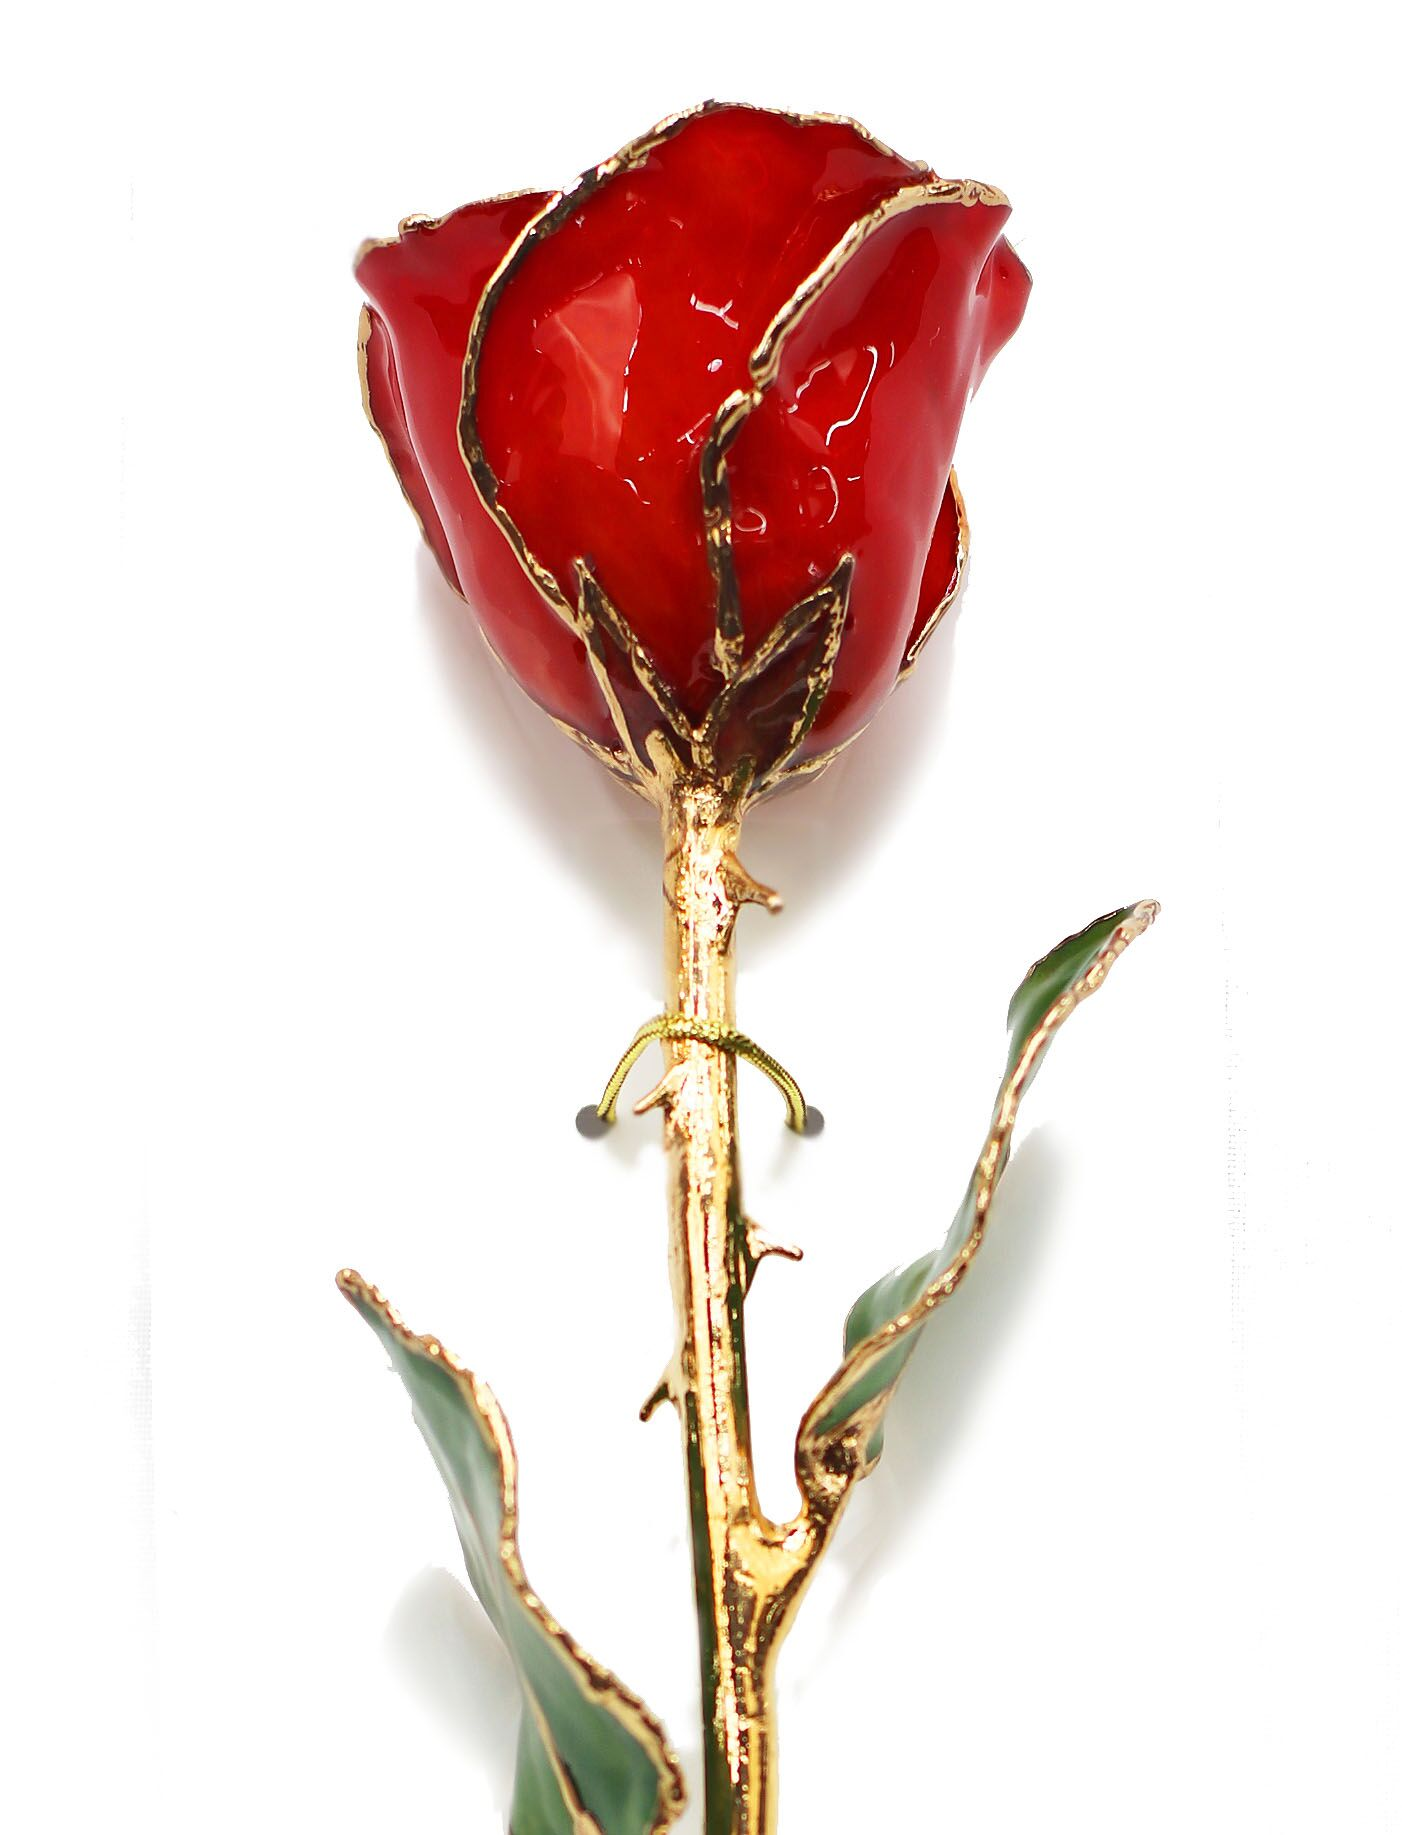 Red Rose dipped in Gold